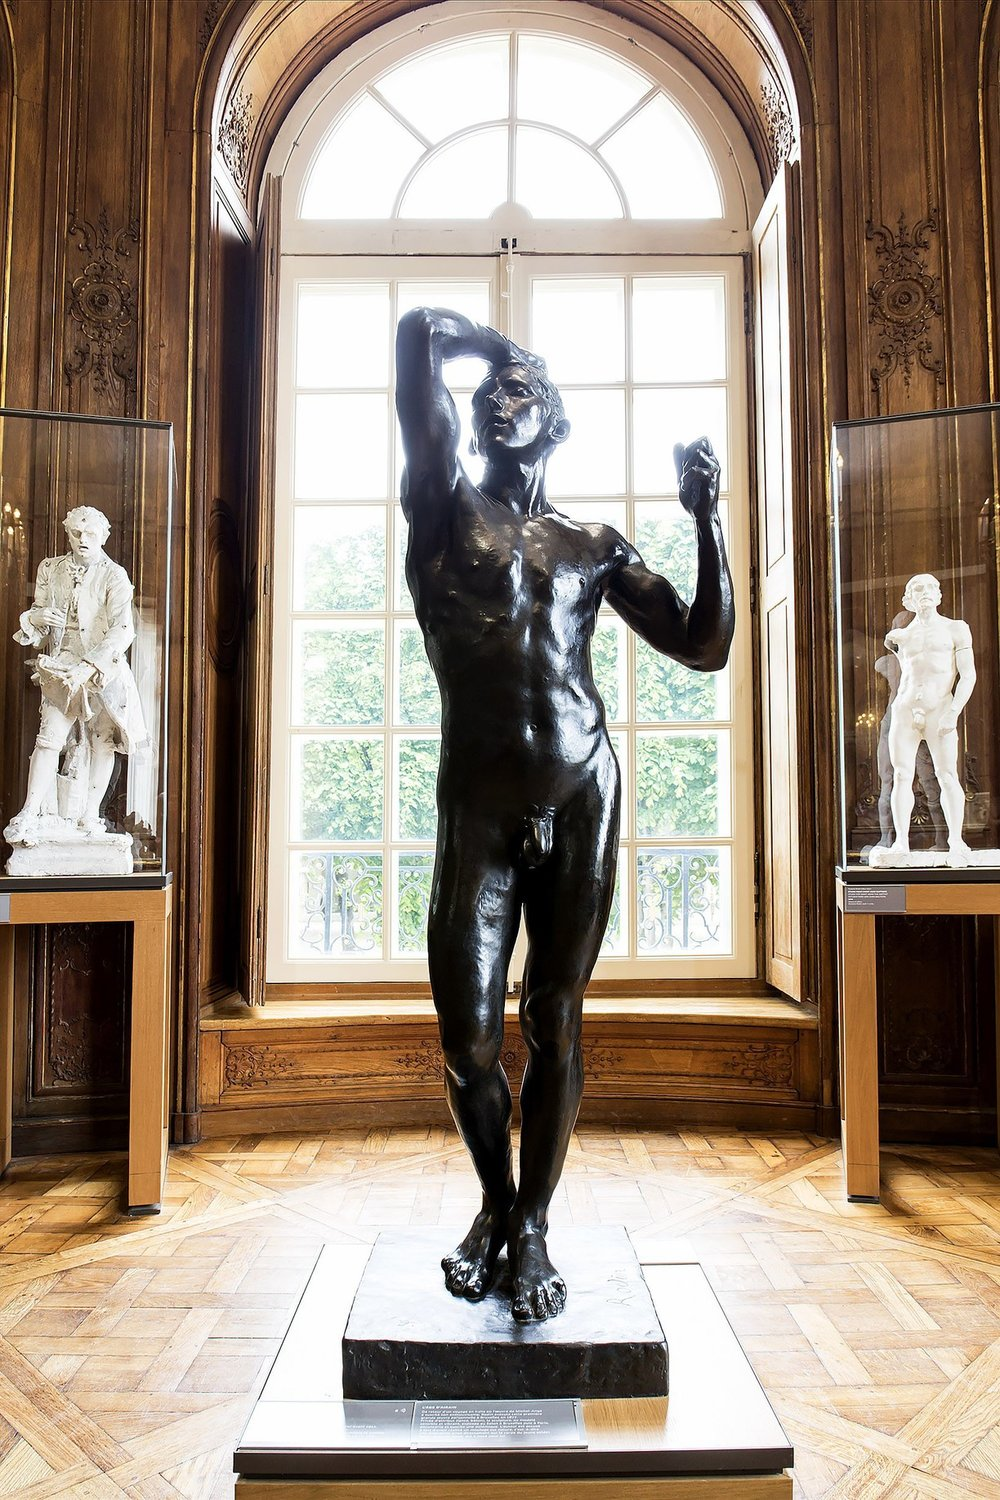 The Age of Bronze. Rodin Museum. Paris. Picture taken by Trover